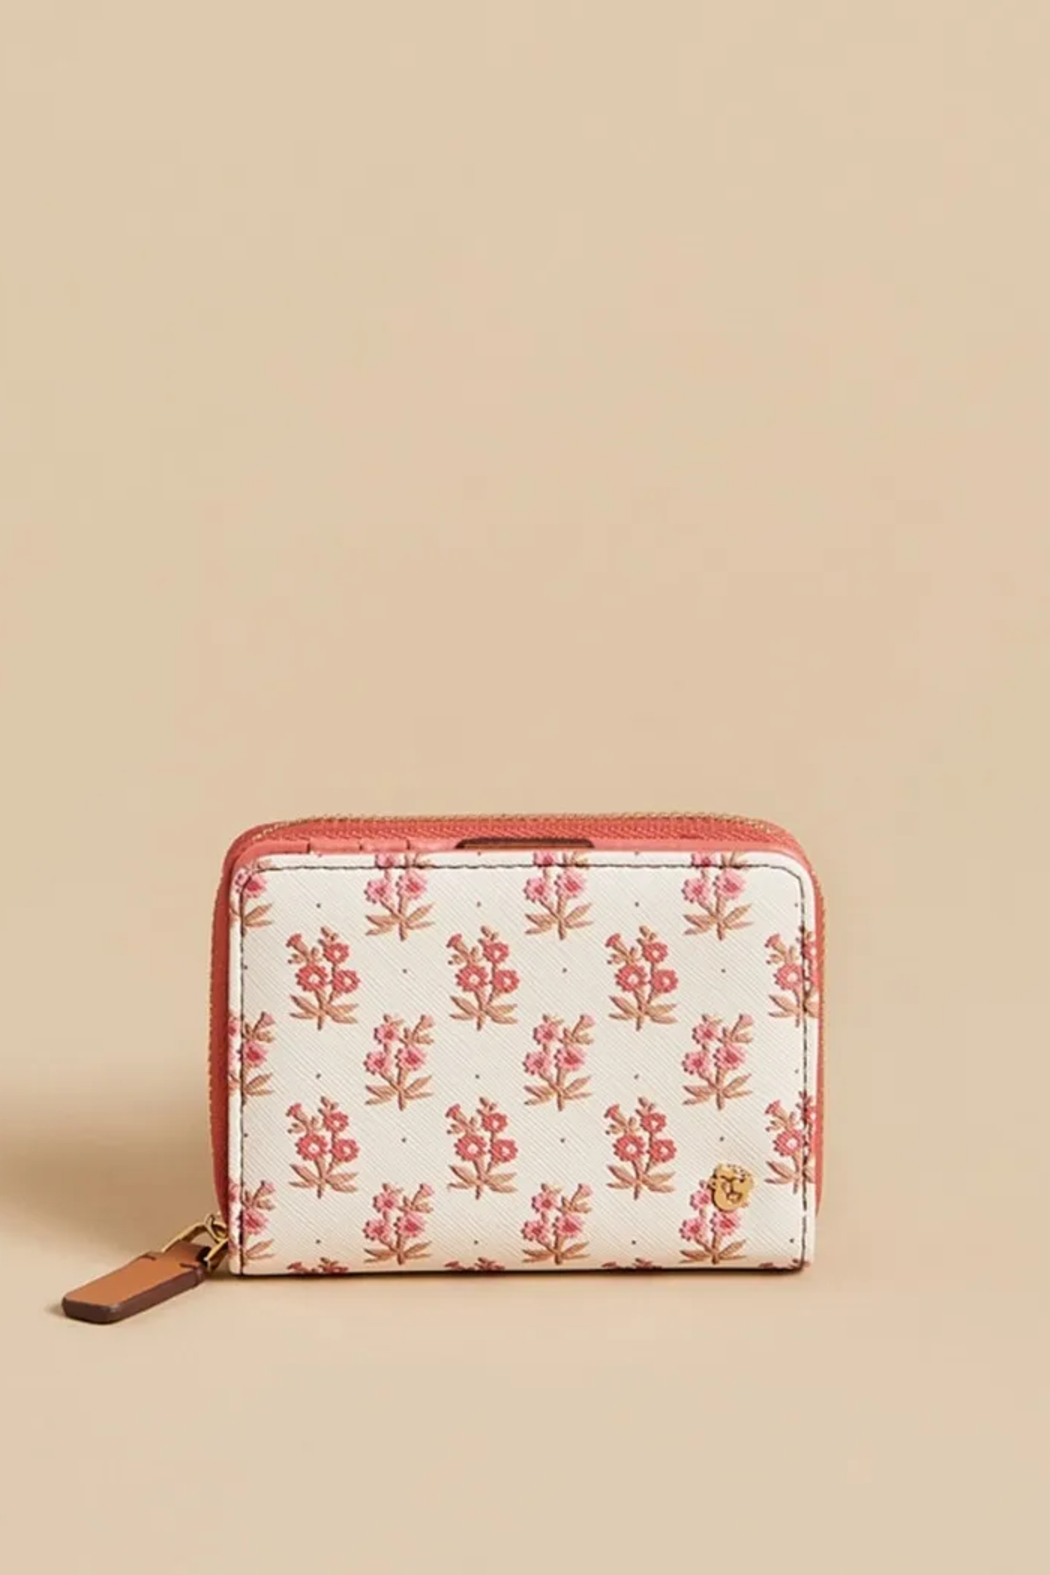 Spartina 449 Mini Wallet-Pink House French Floral - Main Image